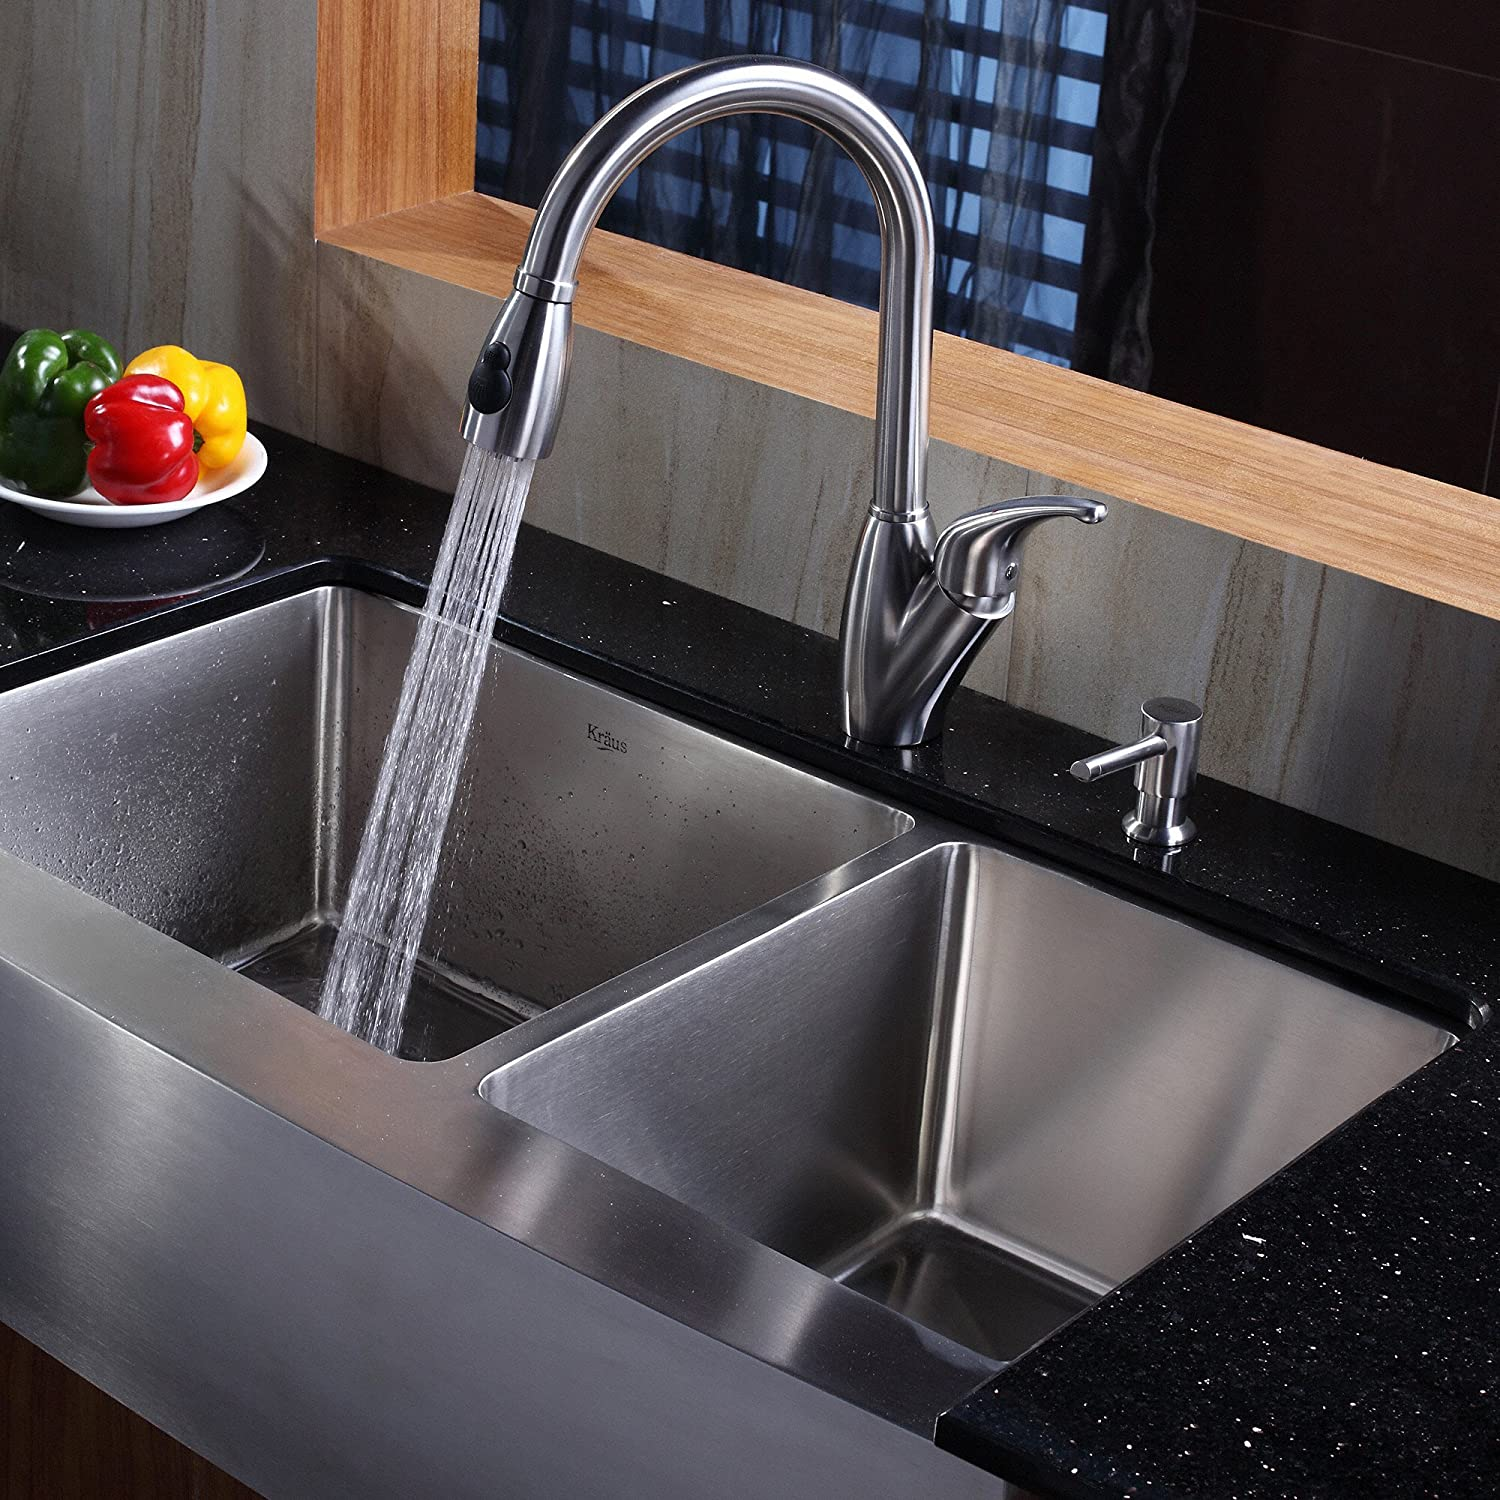 Best Stainless Steel Sinks 2018 - Uncle Paul\'s Top 5 Choices